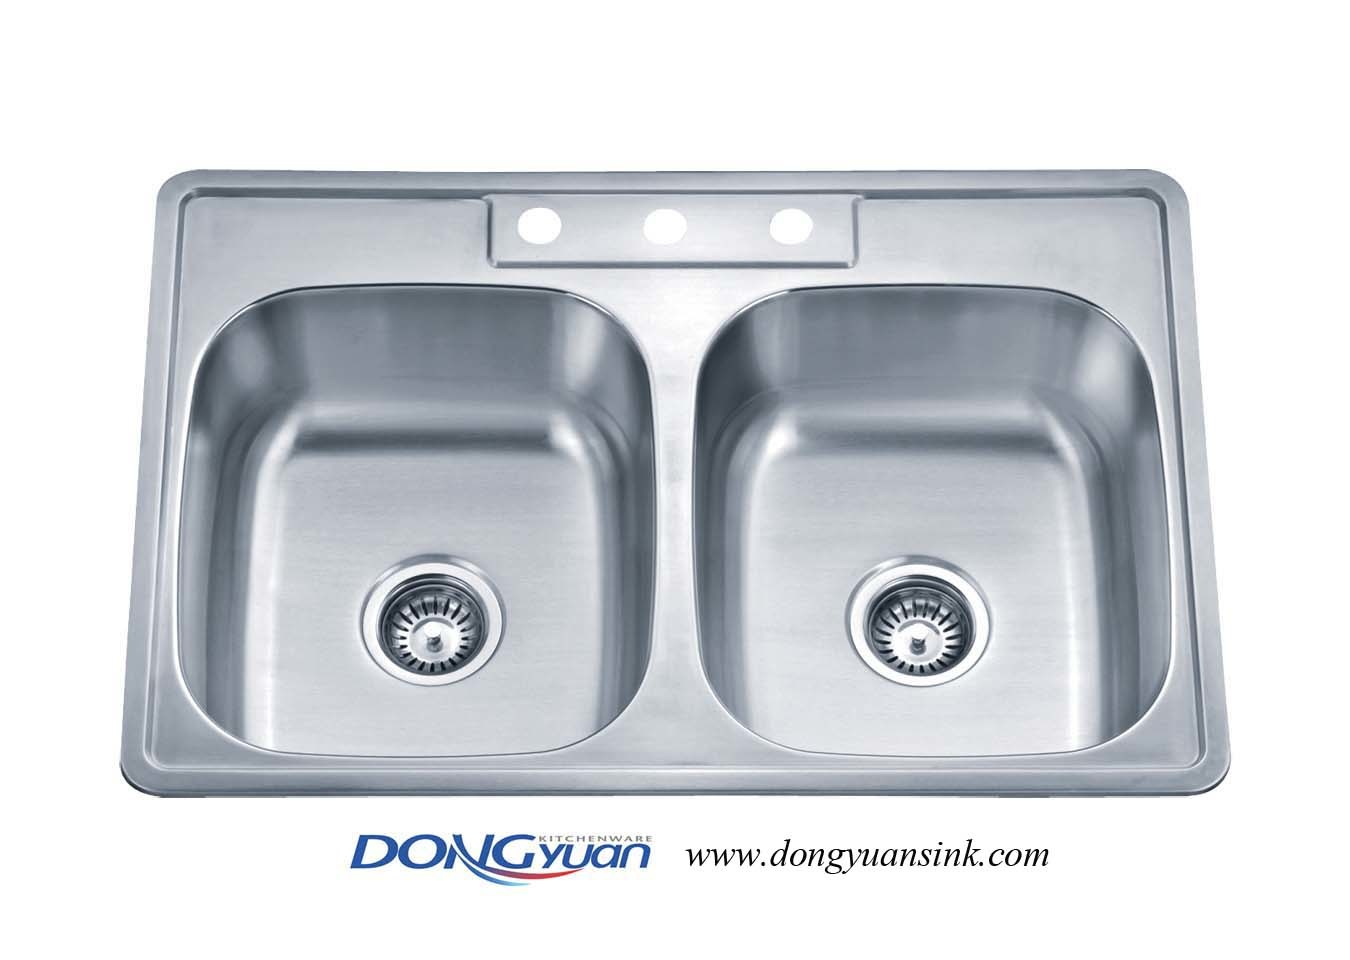 China Upc Certificated 304 Stainless Steel Double Bowls, Topmount ...